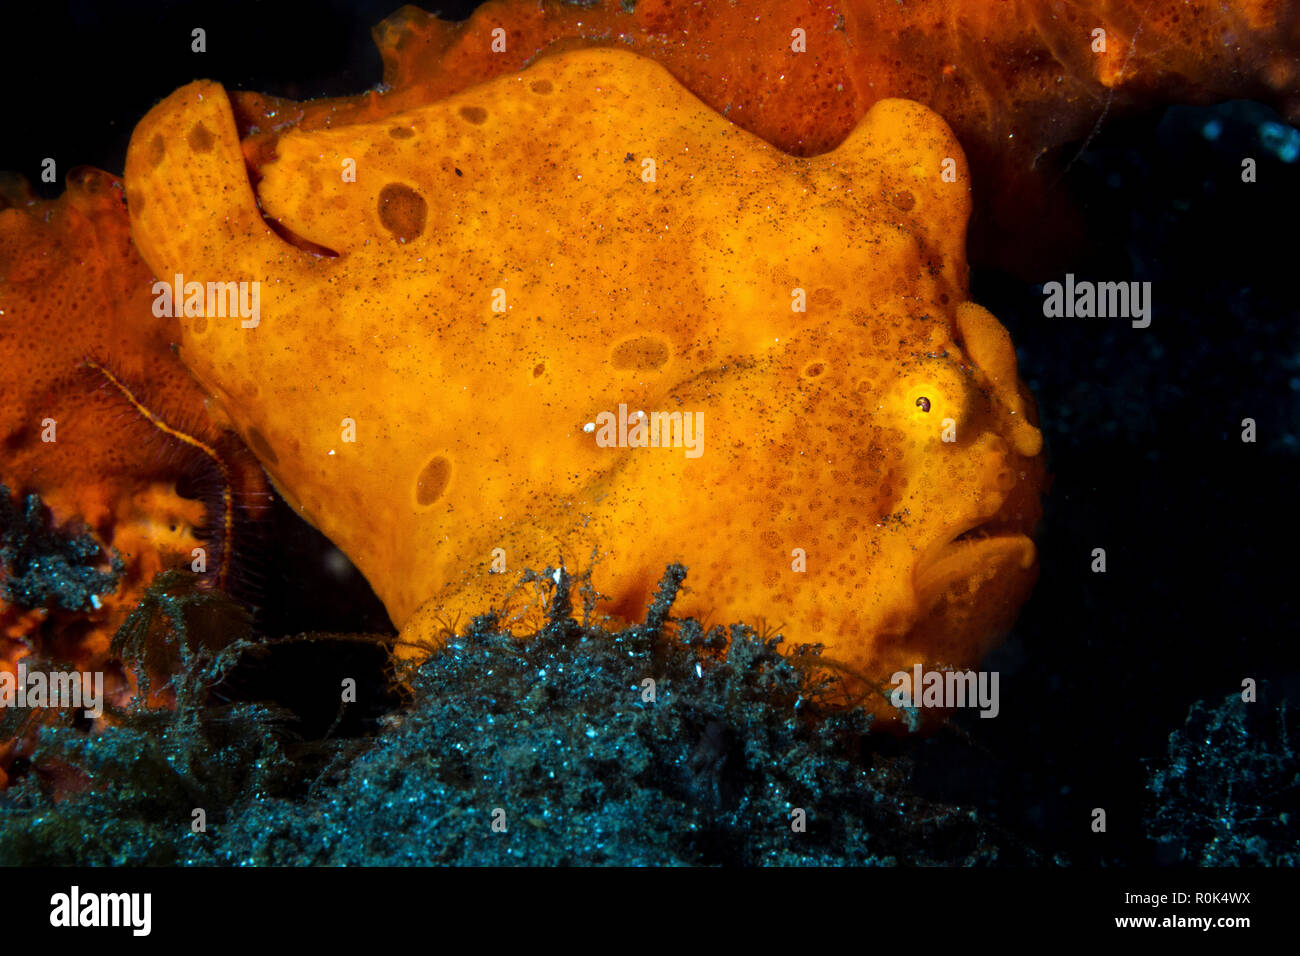 An orange ocellated frogfish, Lembeh Strait, Indonesia. - Stock Image